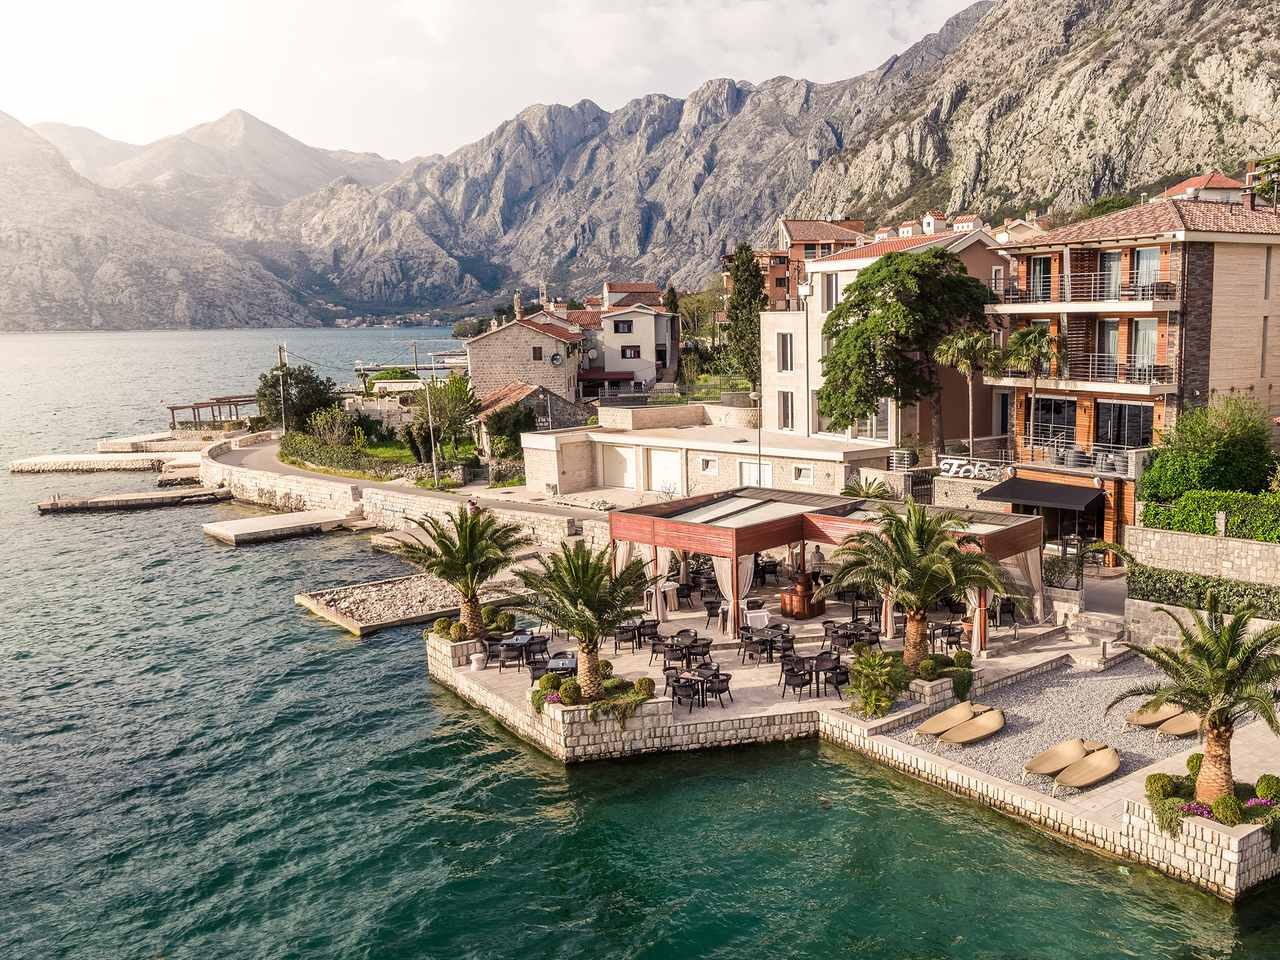 Waterfront location on Kotor Bay